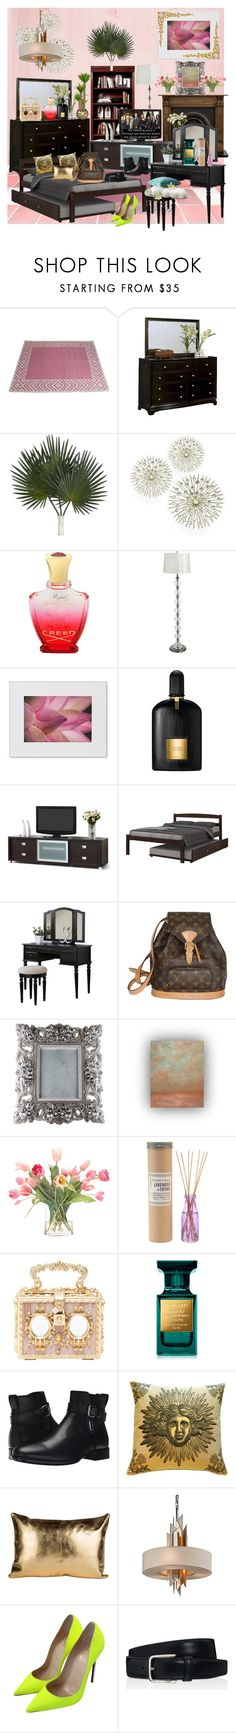 """Chill Time...."" by seanahr ❤ liked on Polyvore featuring Madeline Weinrib, Abbyson Living, Creed, Pier 1 Imports, NOVICA, Tom Ford, Baxton Studio, Donco, Poundex and Louis Vuitton"